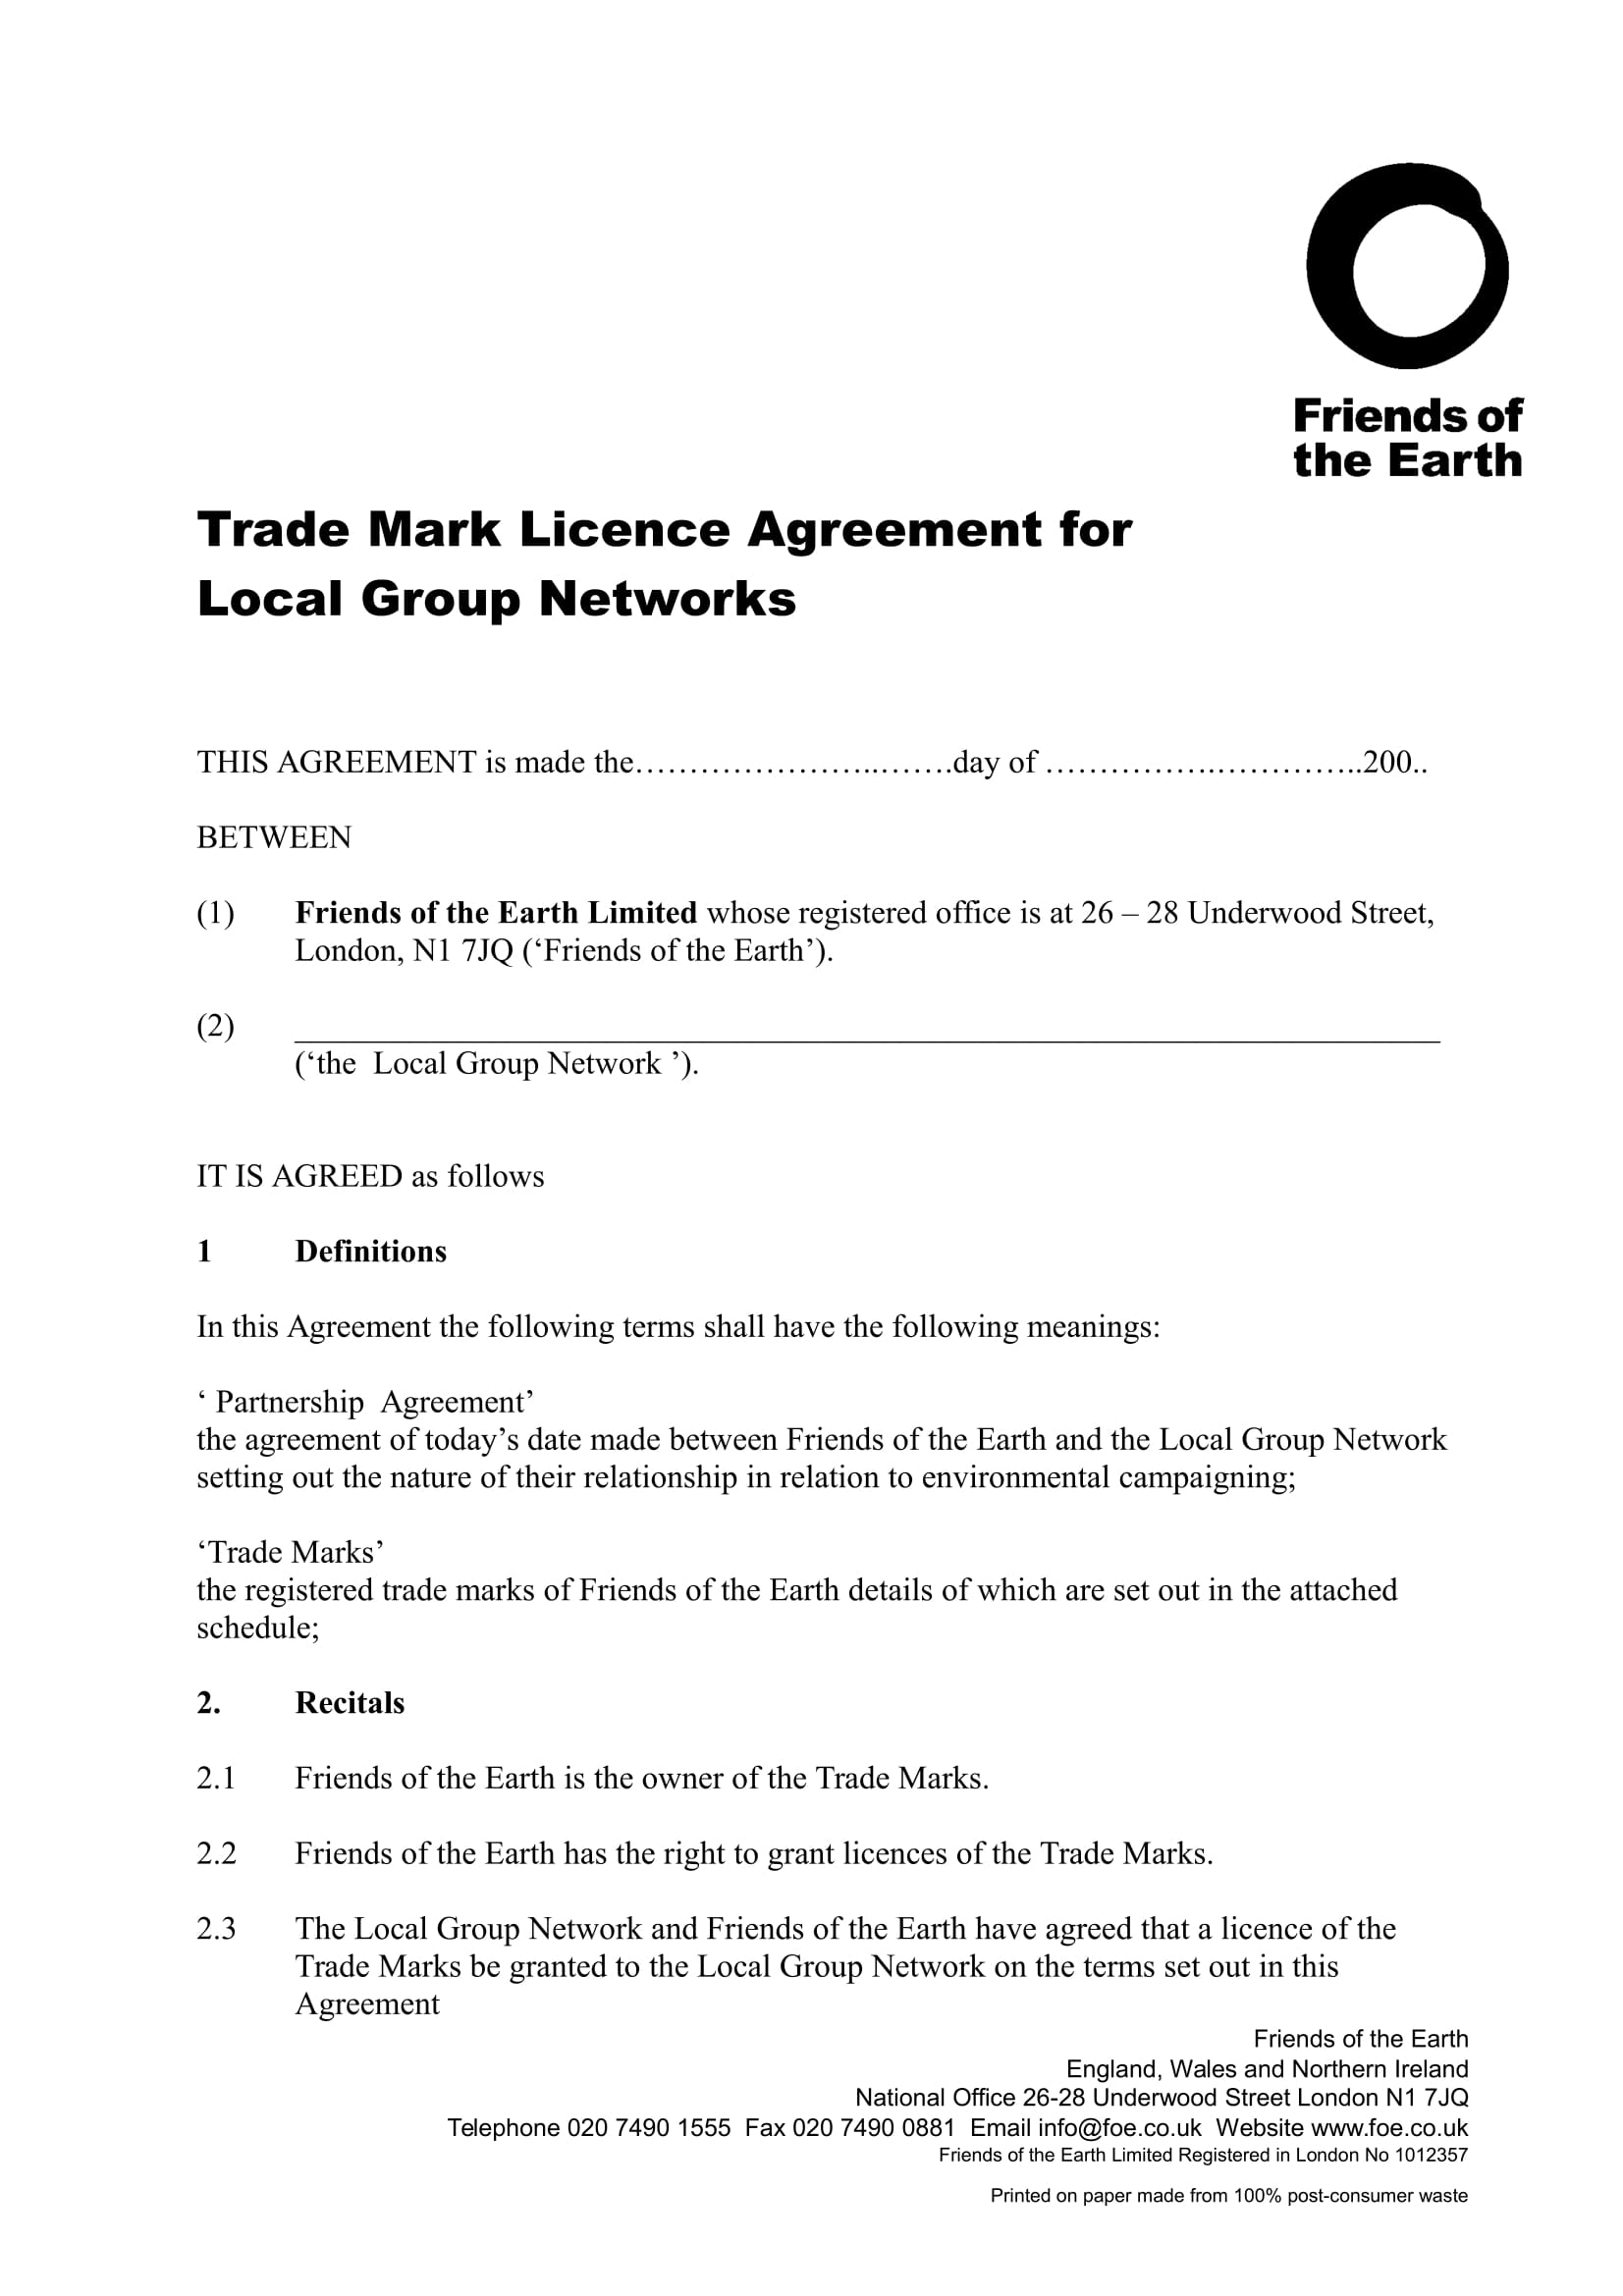 trade mark licence agreement long form 1